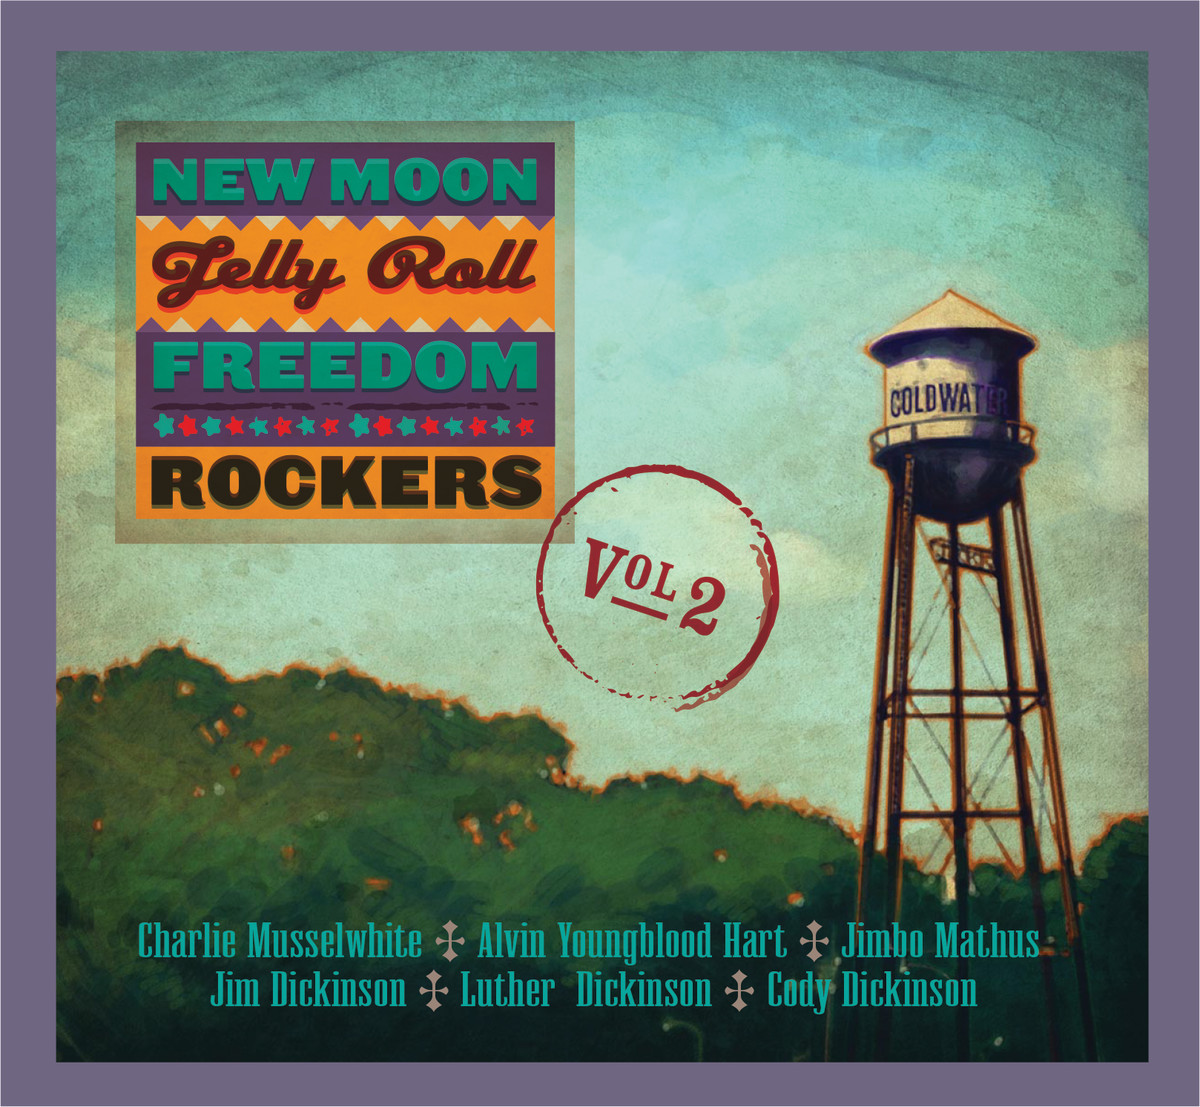 New Moon Jelly Roll Freedom Rockers Vol 2